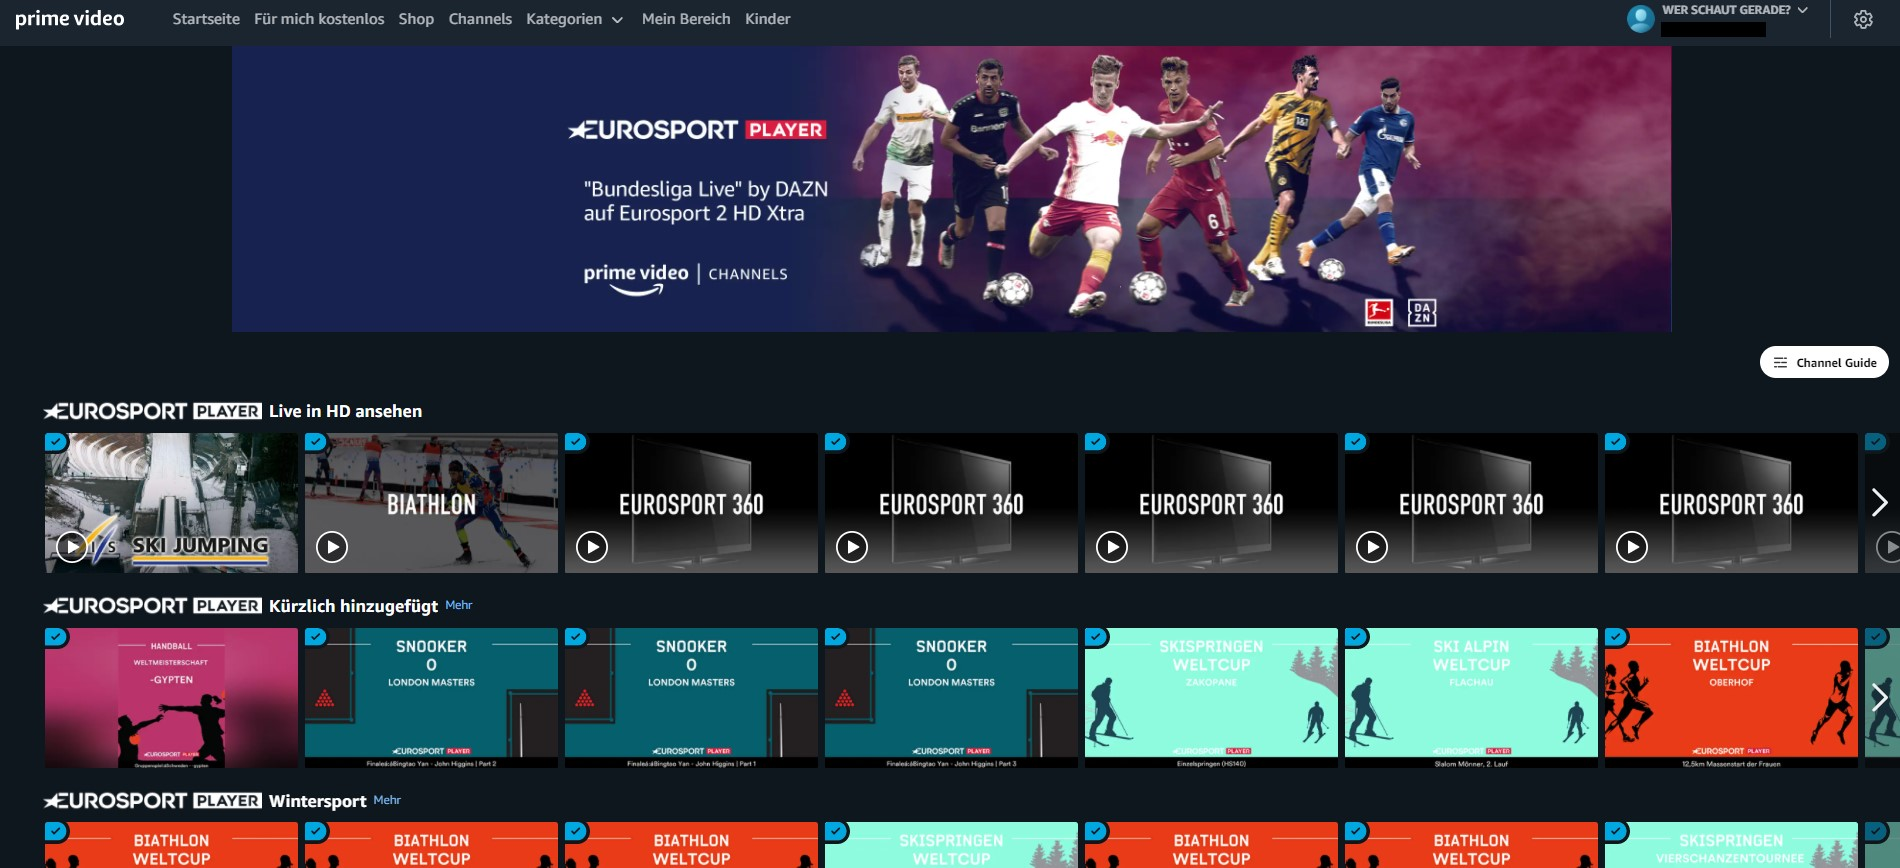 eurosport-player-smart-tv